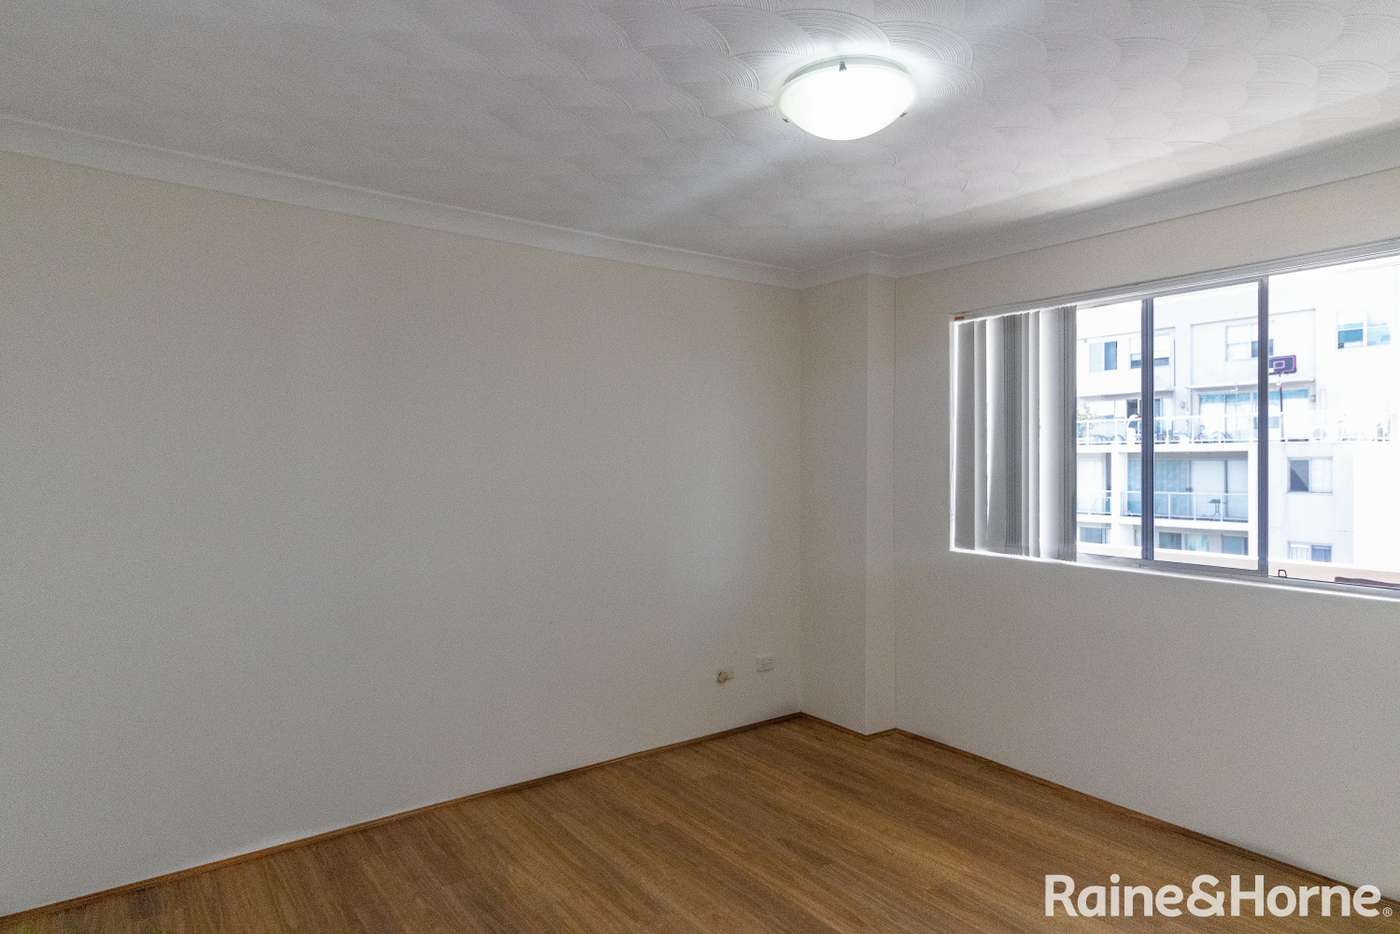 Seventh view of Homely unit listing, 47/5-15 UNION STREET, Parramatta NSW 2150